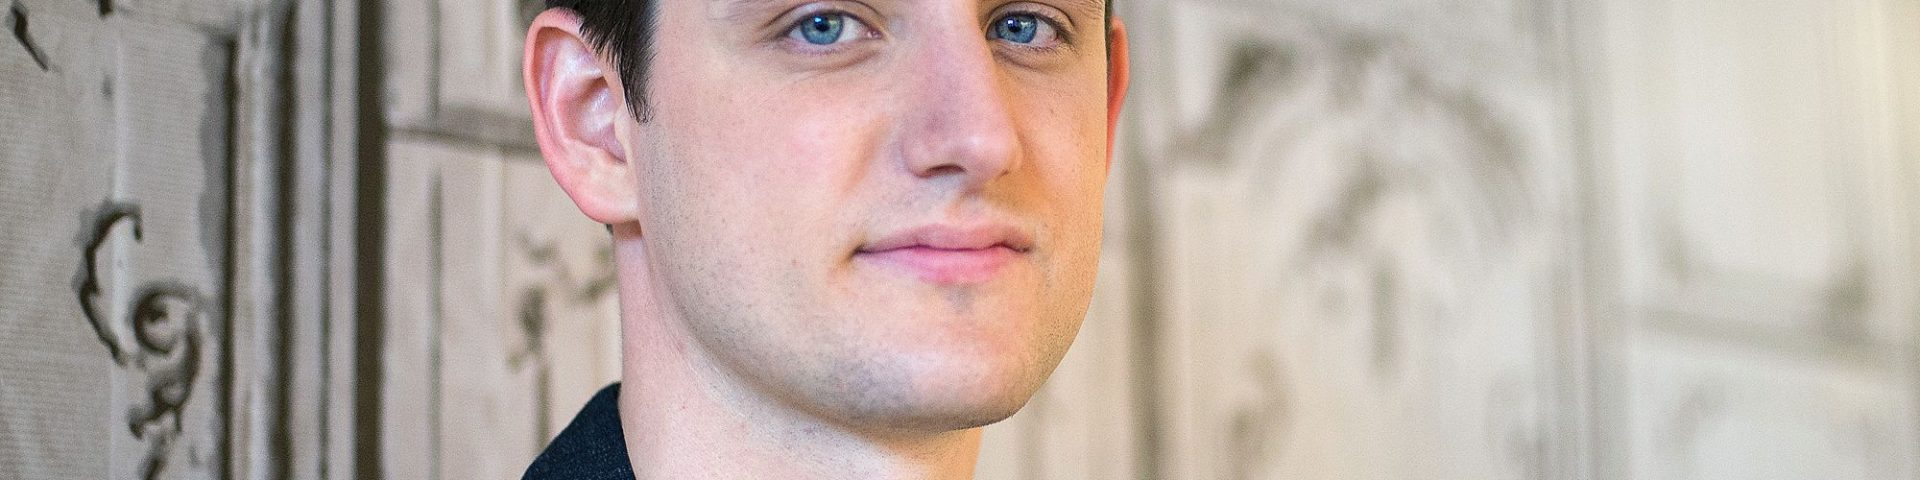 Zach Woods facts 1920x480